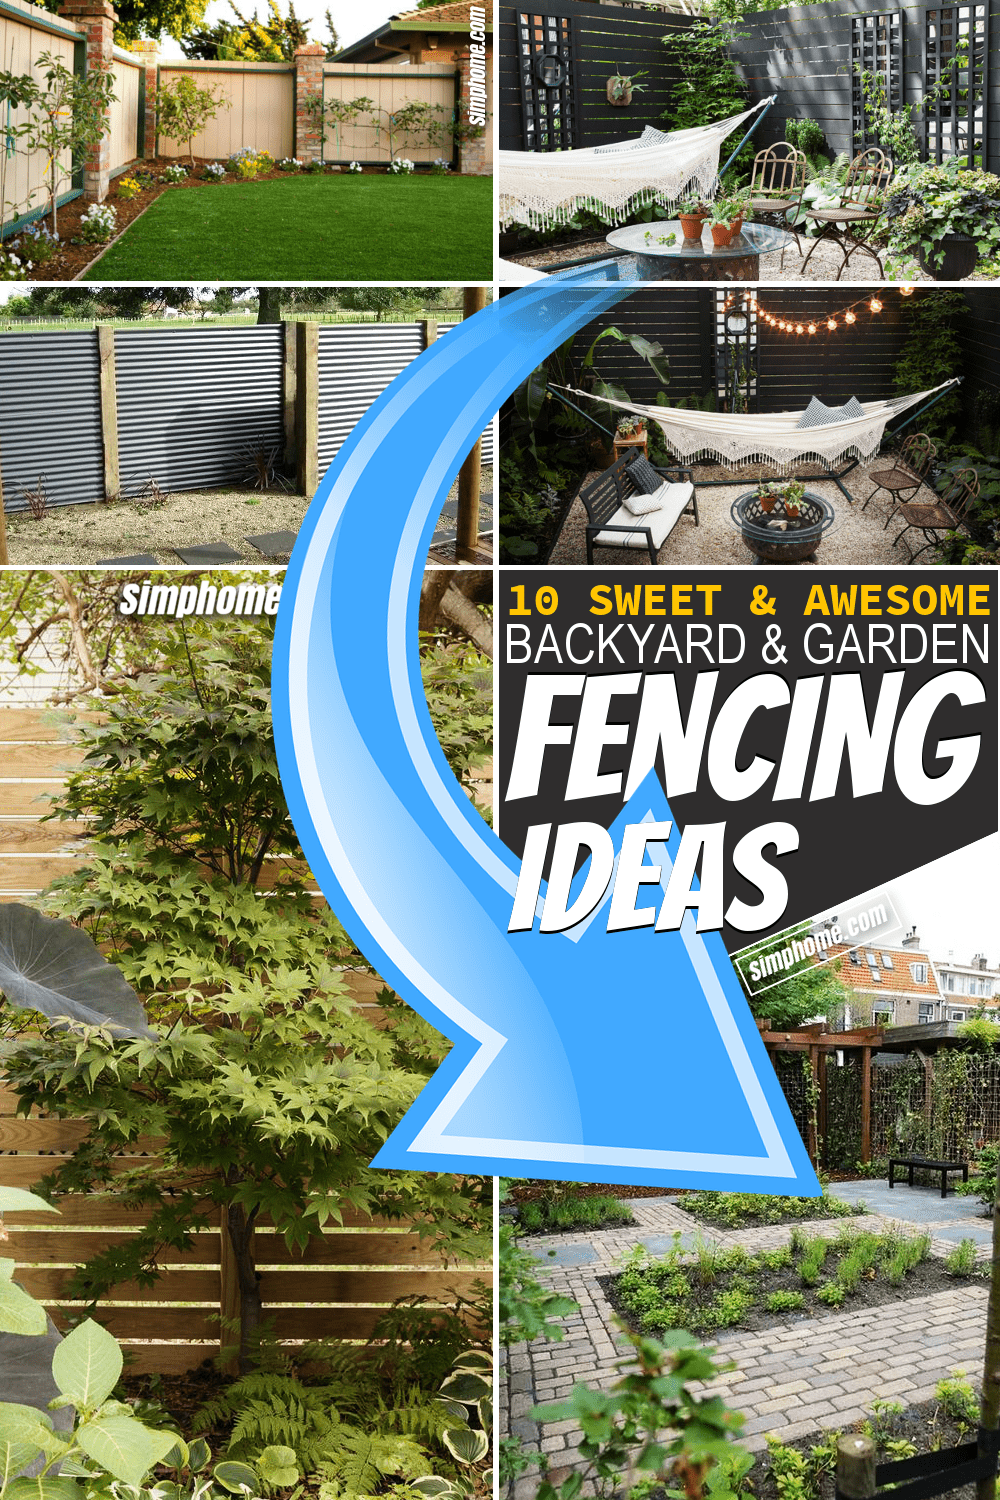 Simphome.com 10 Backyard and garden fencing ideas Featured Pinterest Image